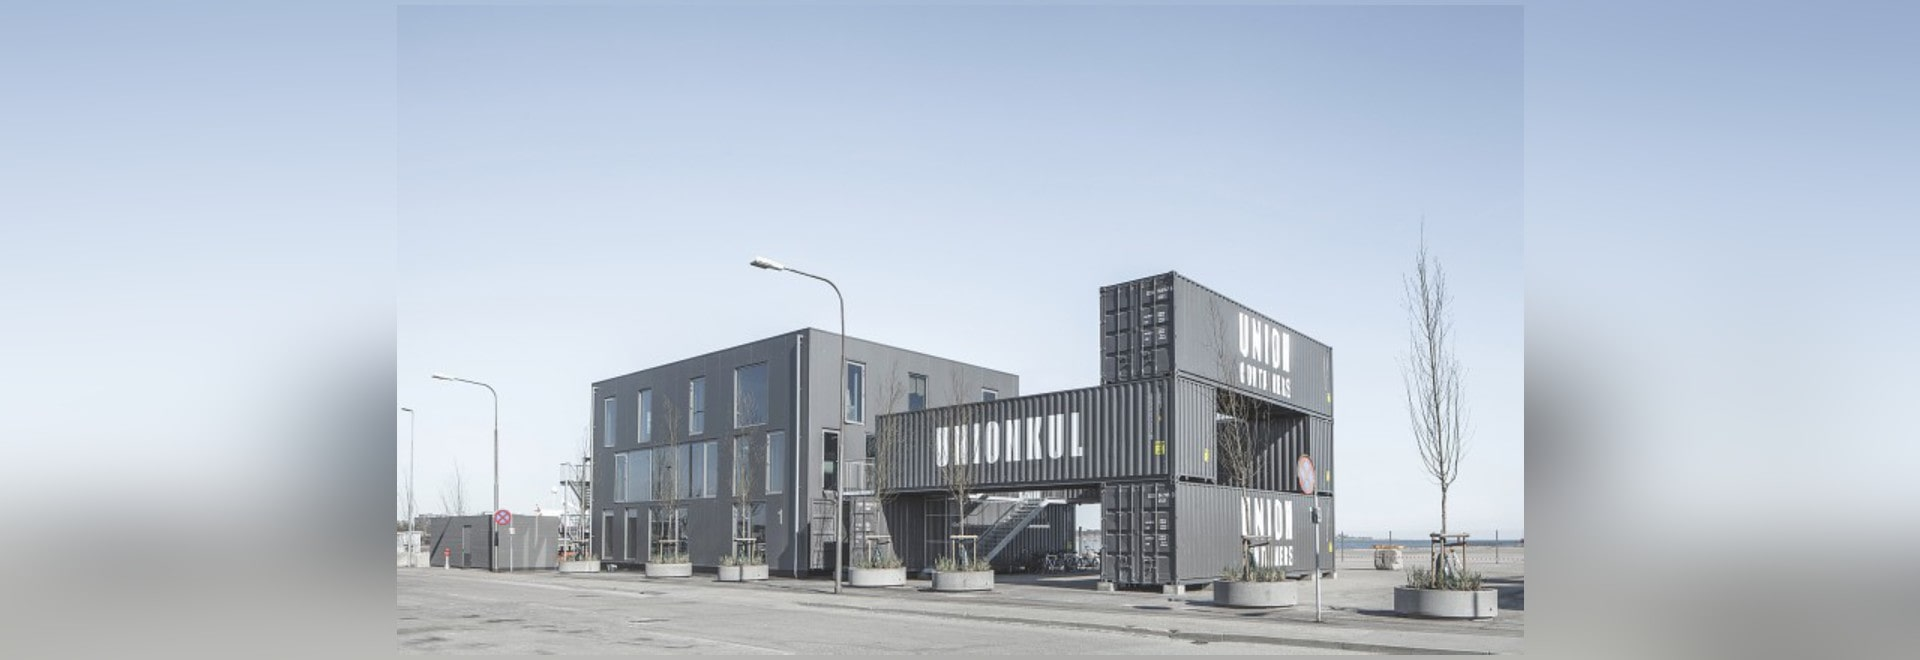 MADE TO BE MOVED: AN OFFICE BUILDING THAT CAN BE DECONSTRUCTED AND RELOCATED